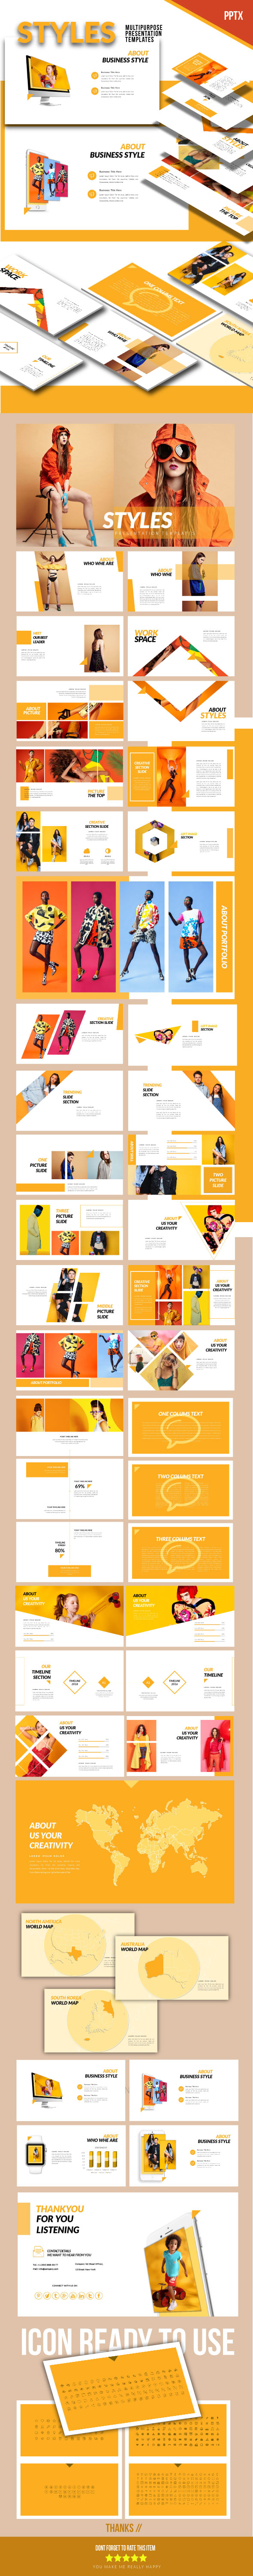 The Styles - Presentation Templates - PowerPoint Templates Presentation Templates